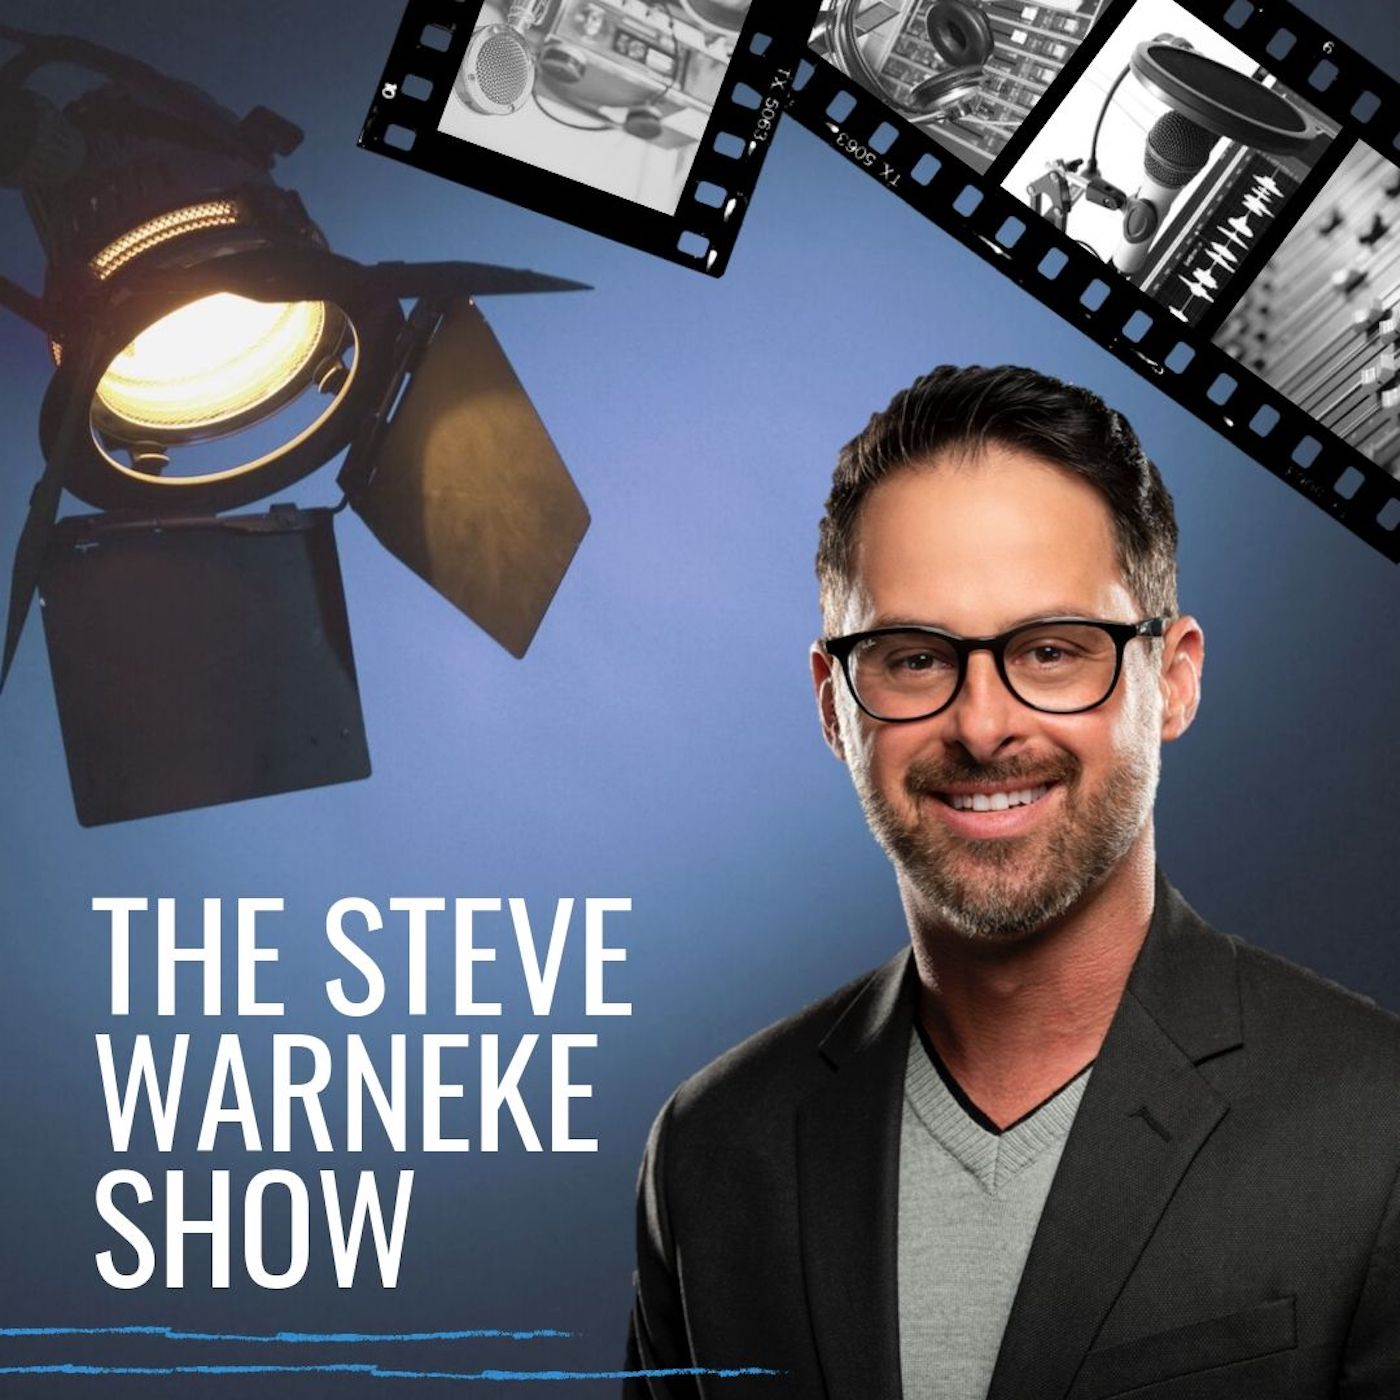 The Steve Warneke Show show art